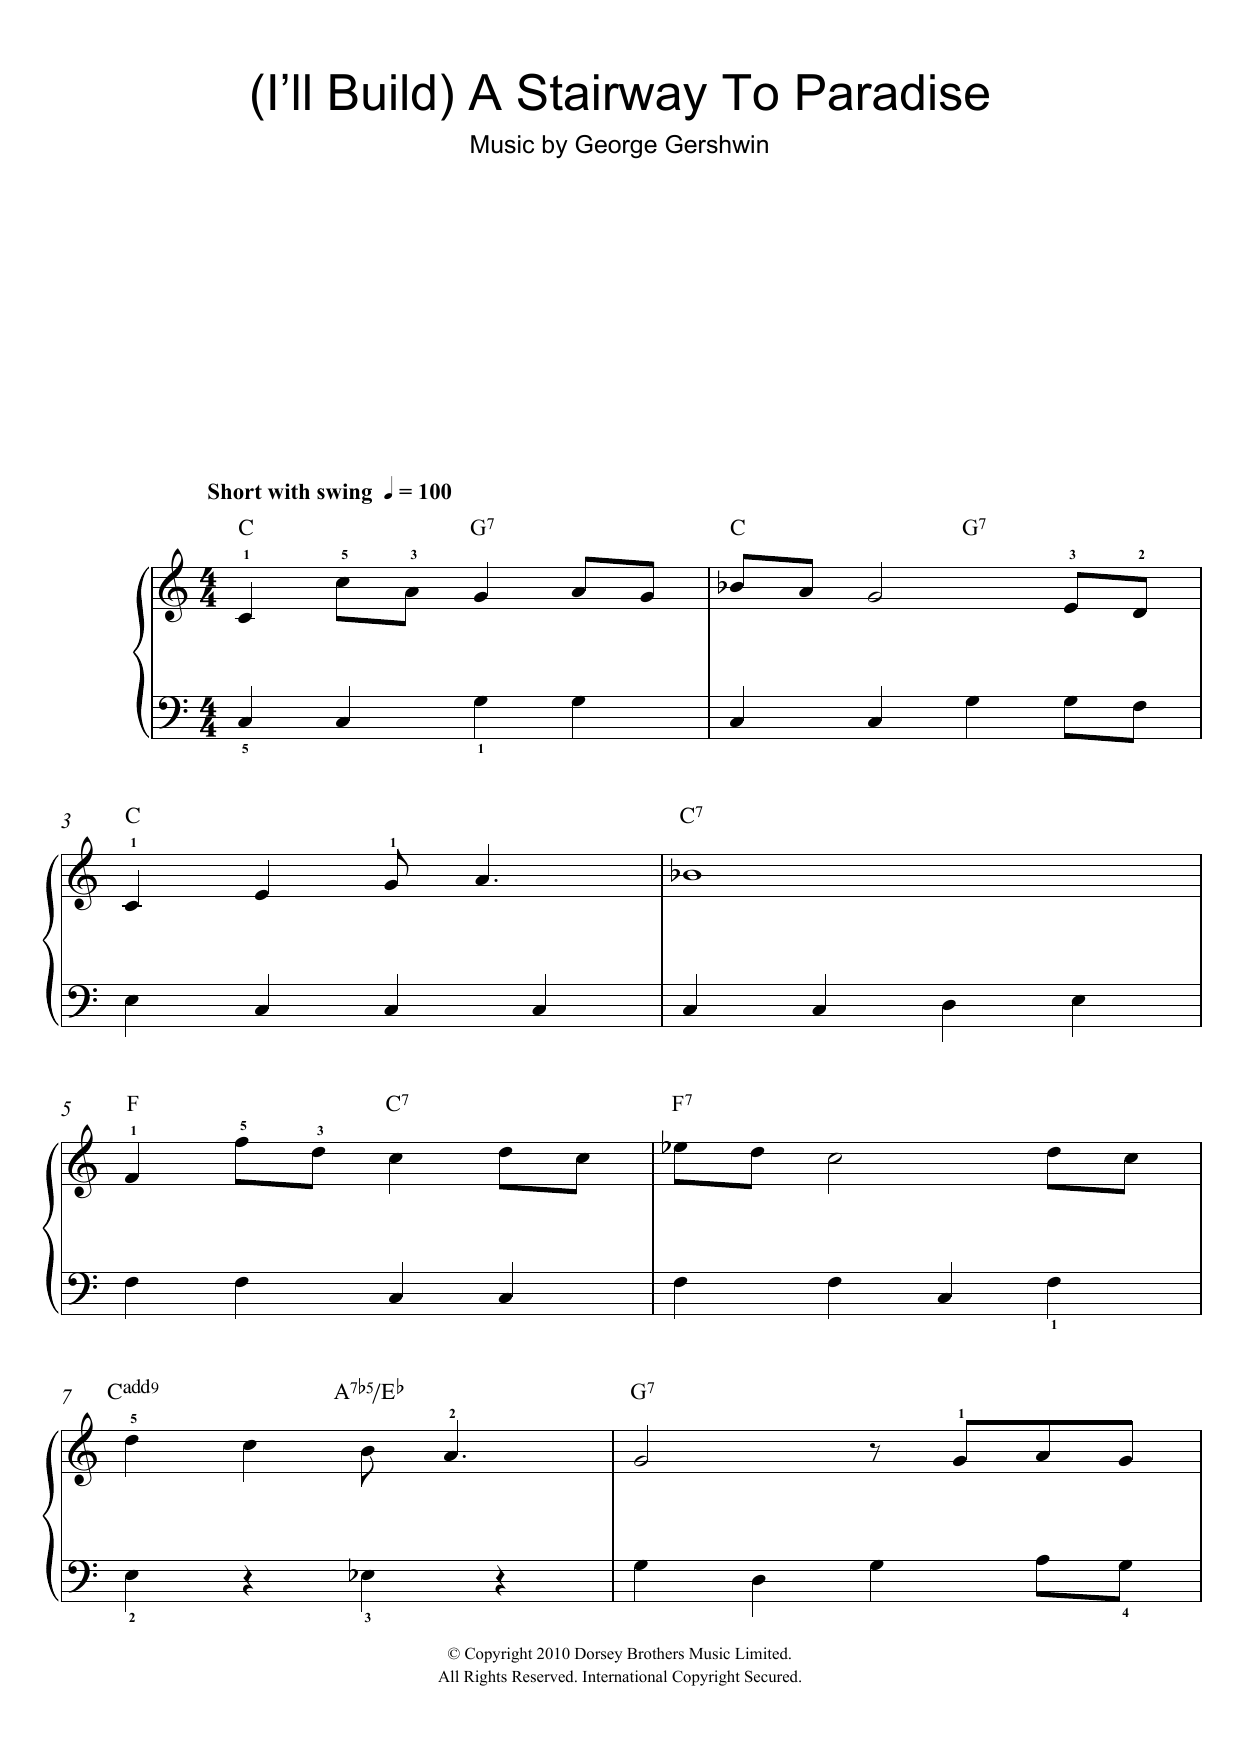 Sheet Music Digital Files To Print - Licensed Easy Piano Digital ...